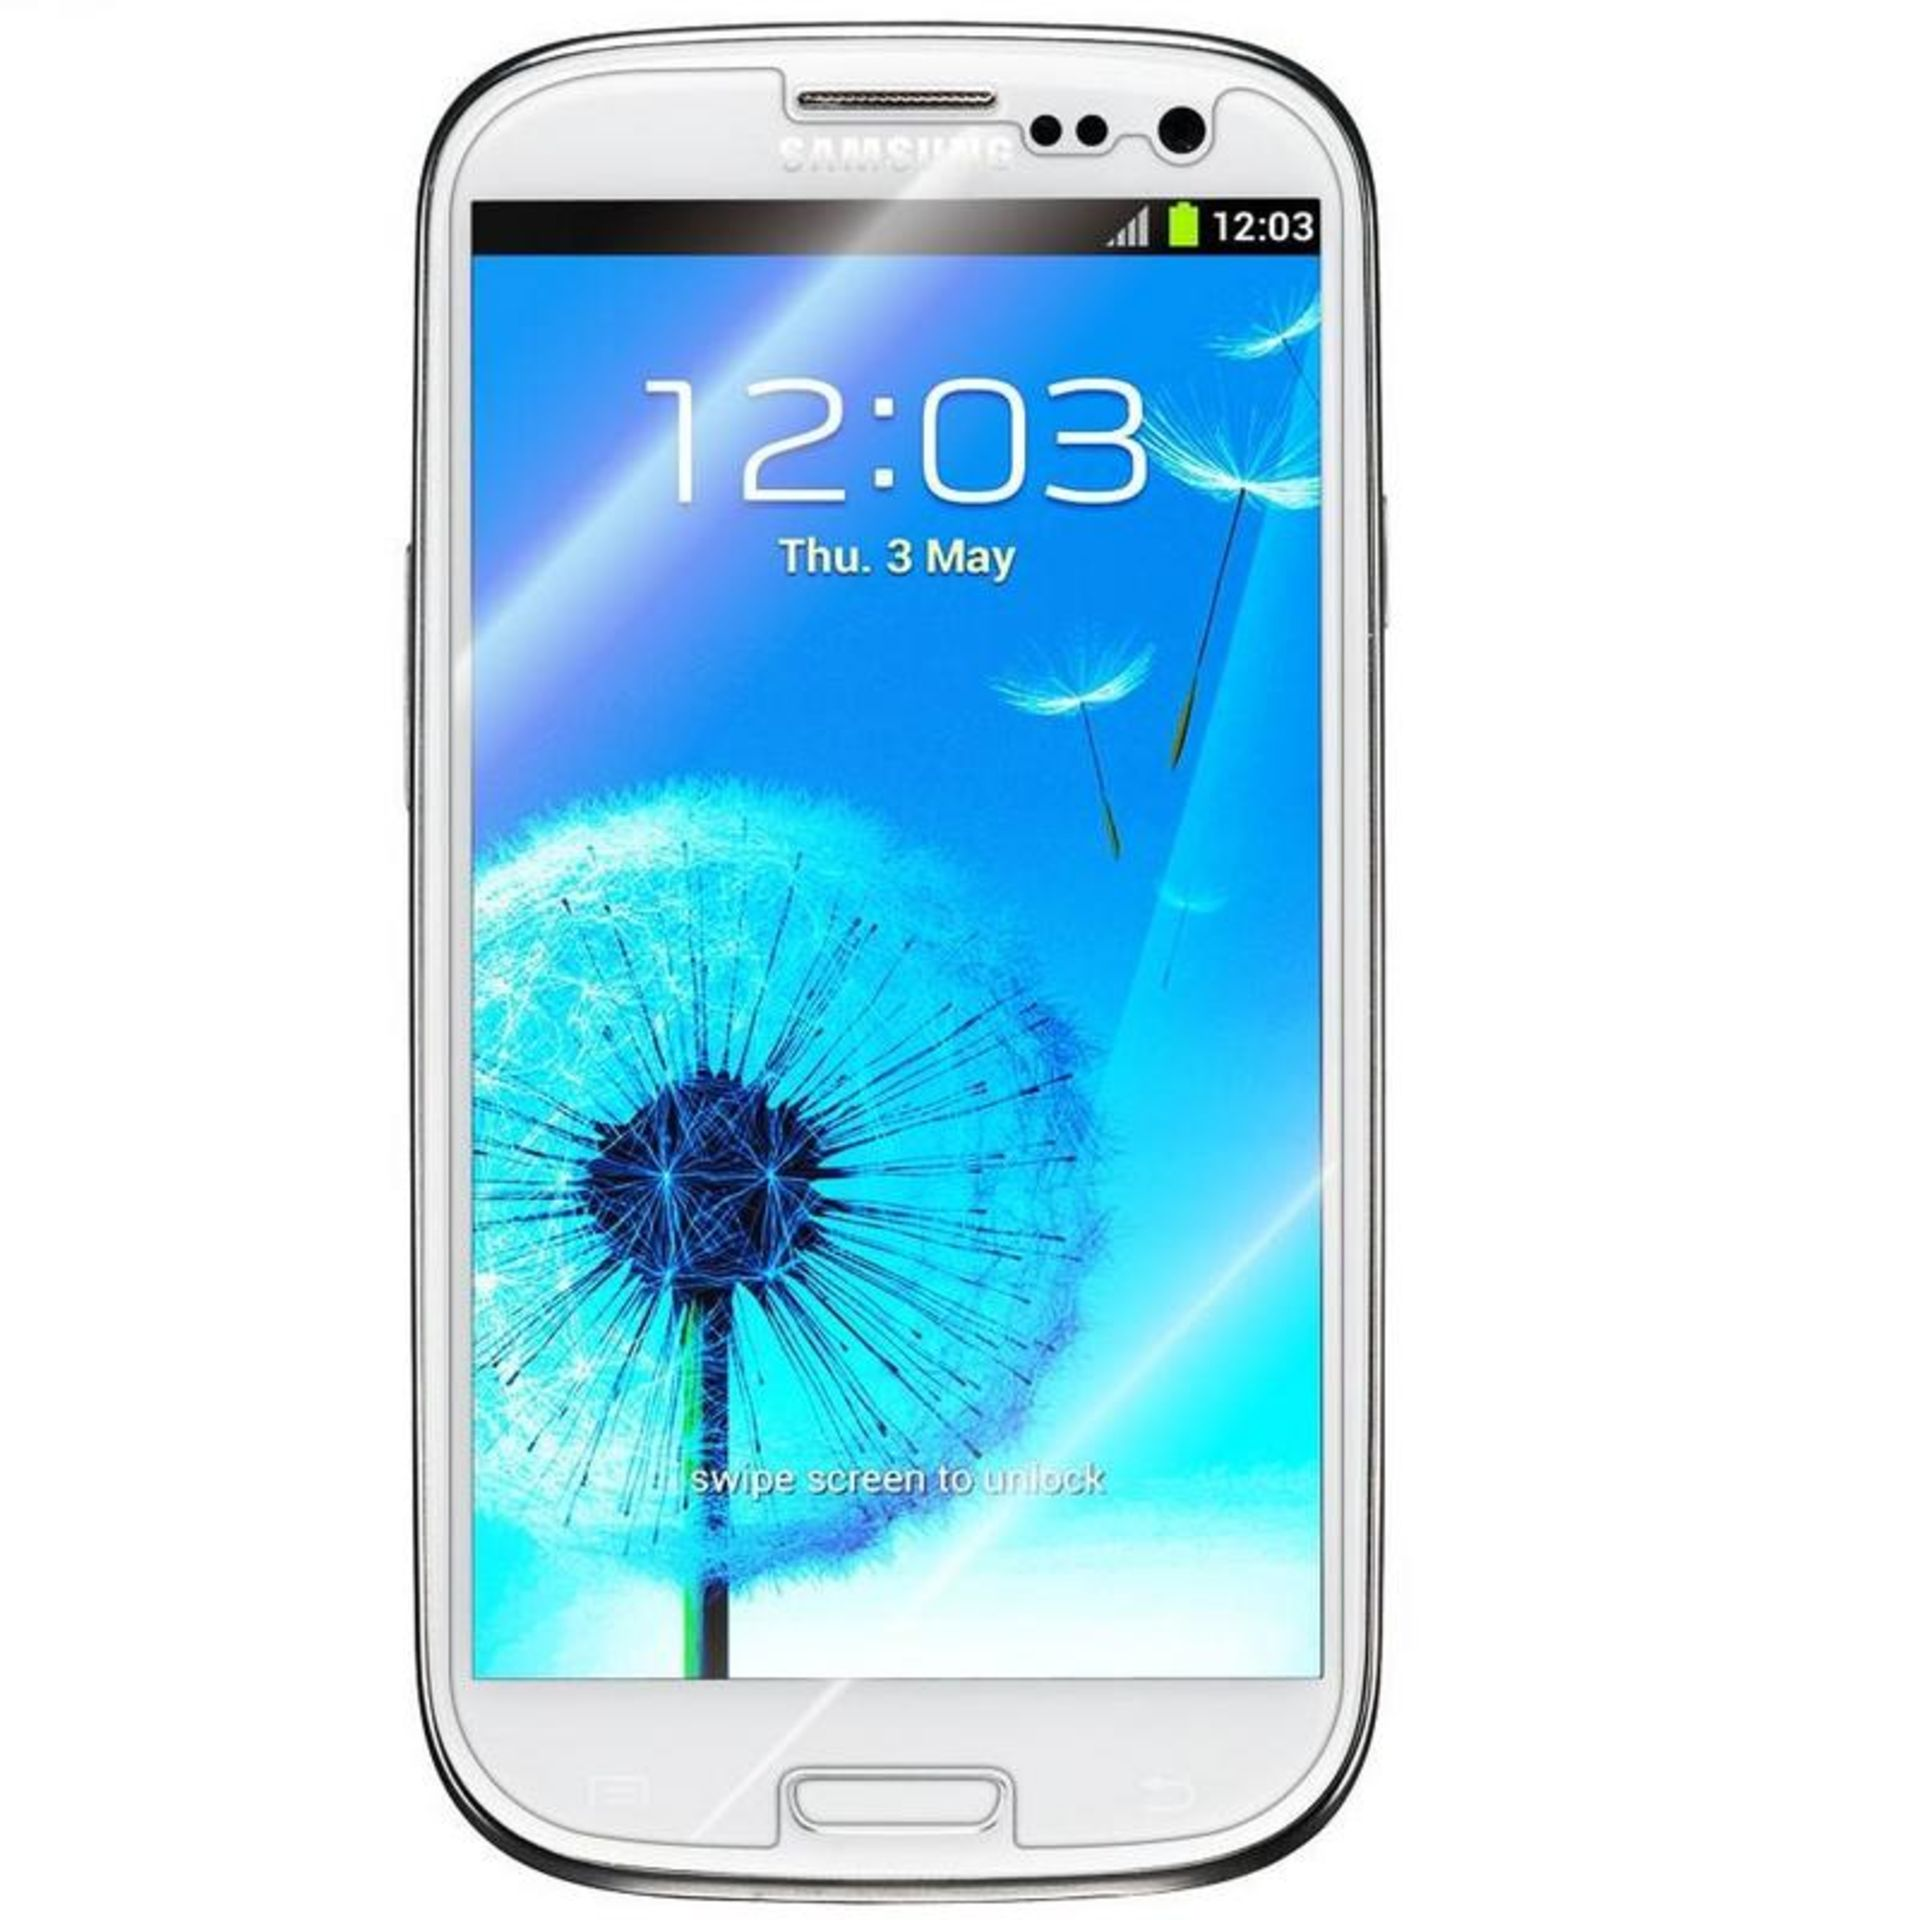 No VAT Grade A Samsung S3(i9300) Colours May Vary Item available approx 15 working days after sale